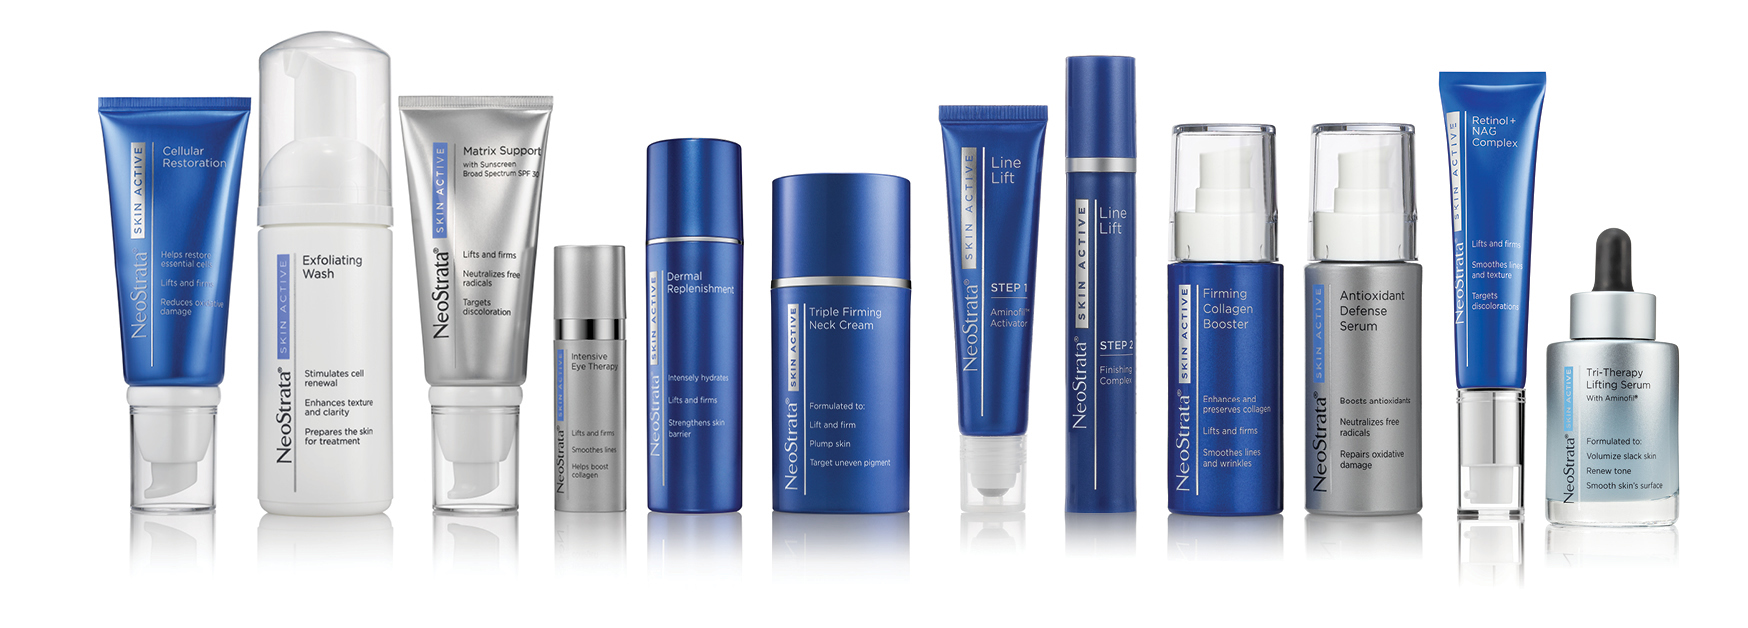 SkinActive Group